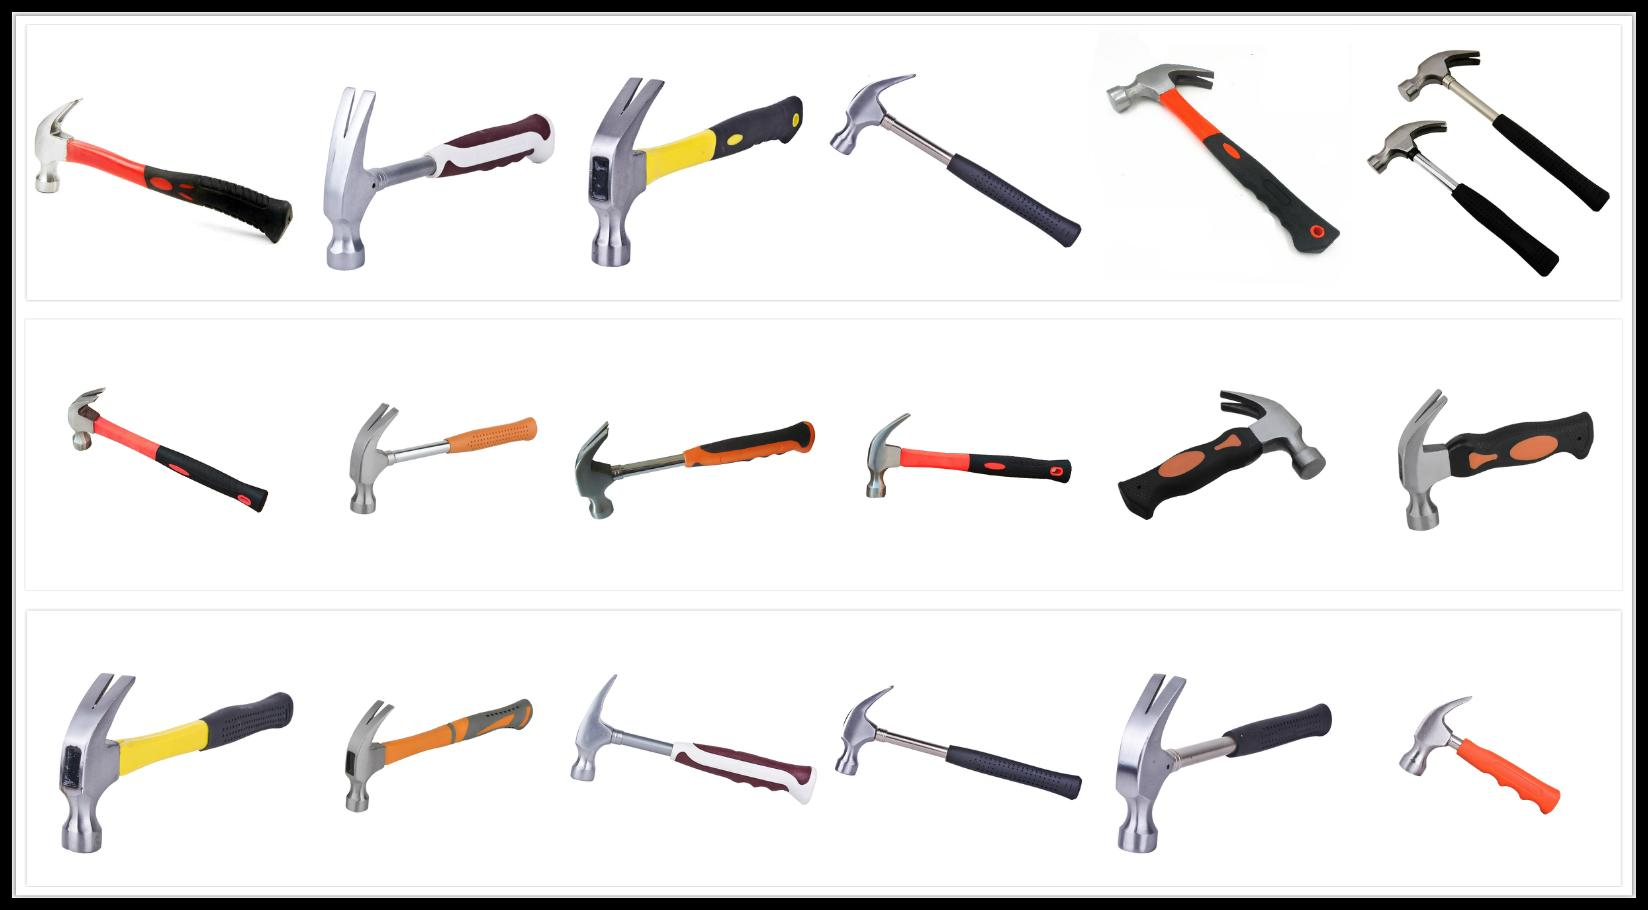 18 Claw Hammer Brushes